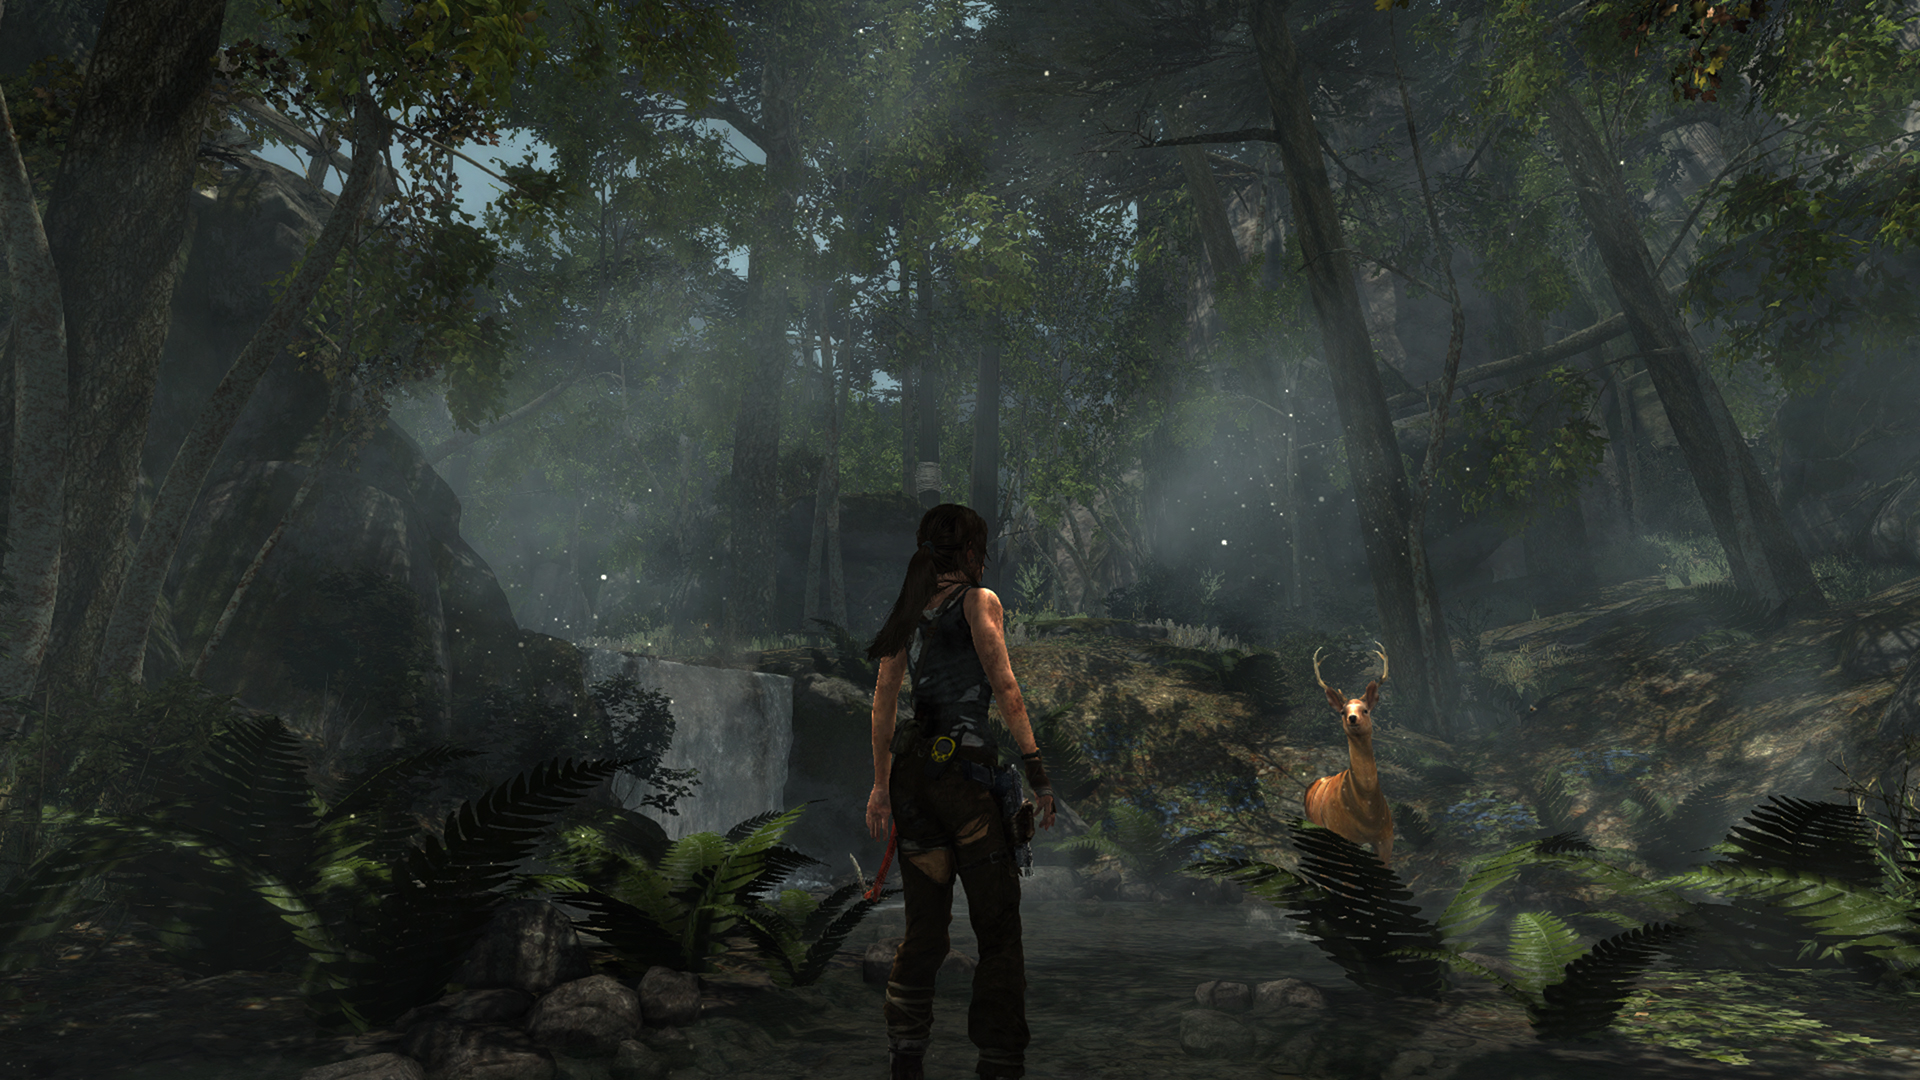 Lara Croft and a deer in a forest.